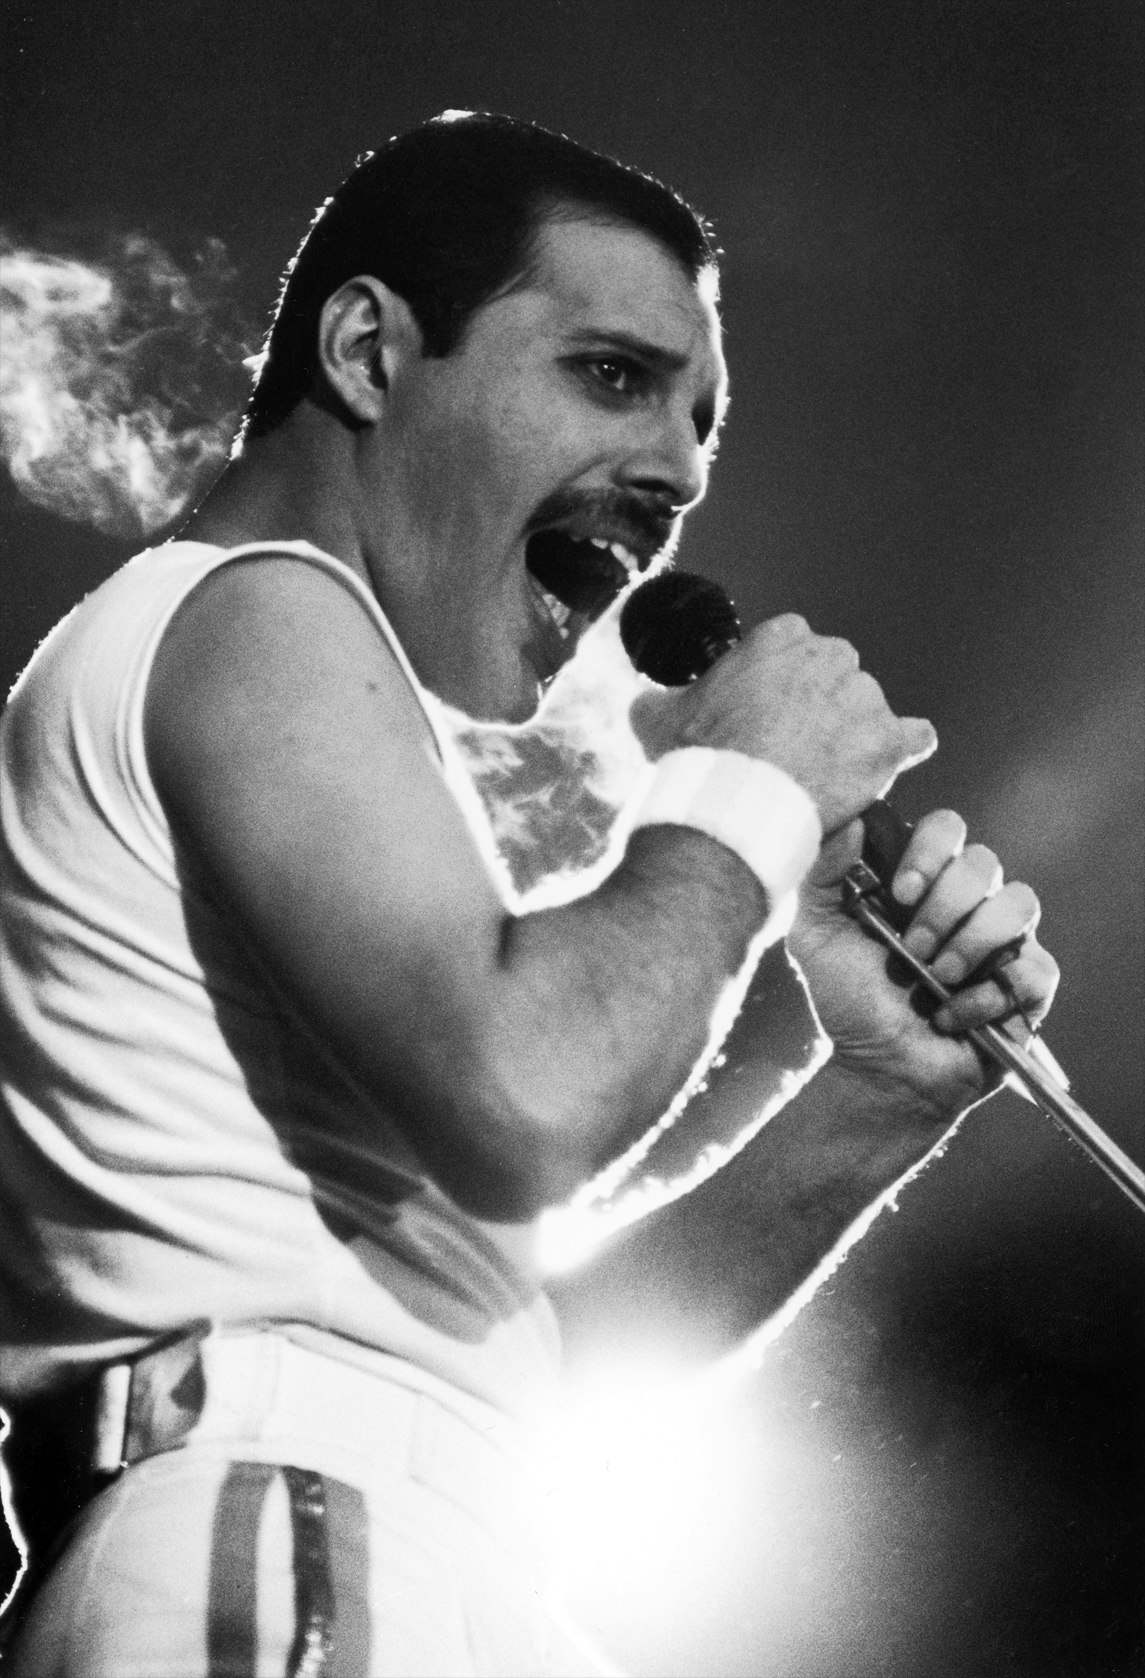 freddie mercury mp3freddie mercury mama, freddie mercury mp3, freddie mercury queen, freddie mercury i want to break free, freddie mercury barcelona, freddie mercury show moscow, freddie mercury скачать, freddie mercury 1991, freddie mercury mother love, freddie mercury magic, freddie mercury barcelona скачать, freddie mercury show must go on, freddie mercury tribute concert, freddie mercury wiki, freddie mercury wikipedia, freddie mercury love kills, freddie mercury the great pretender, freddie mercury time, freddie mercury champions, freddie mercury live